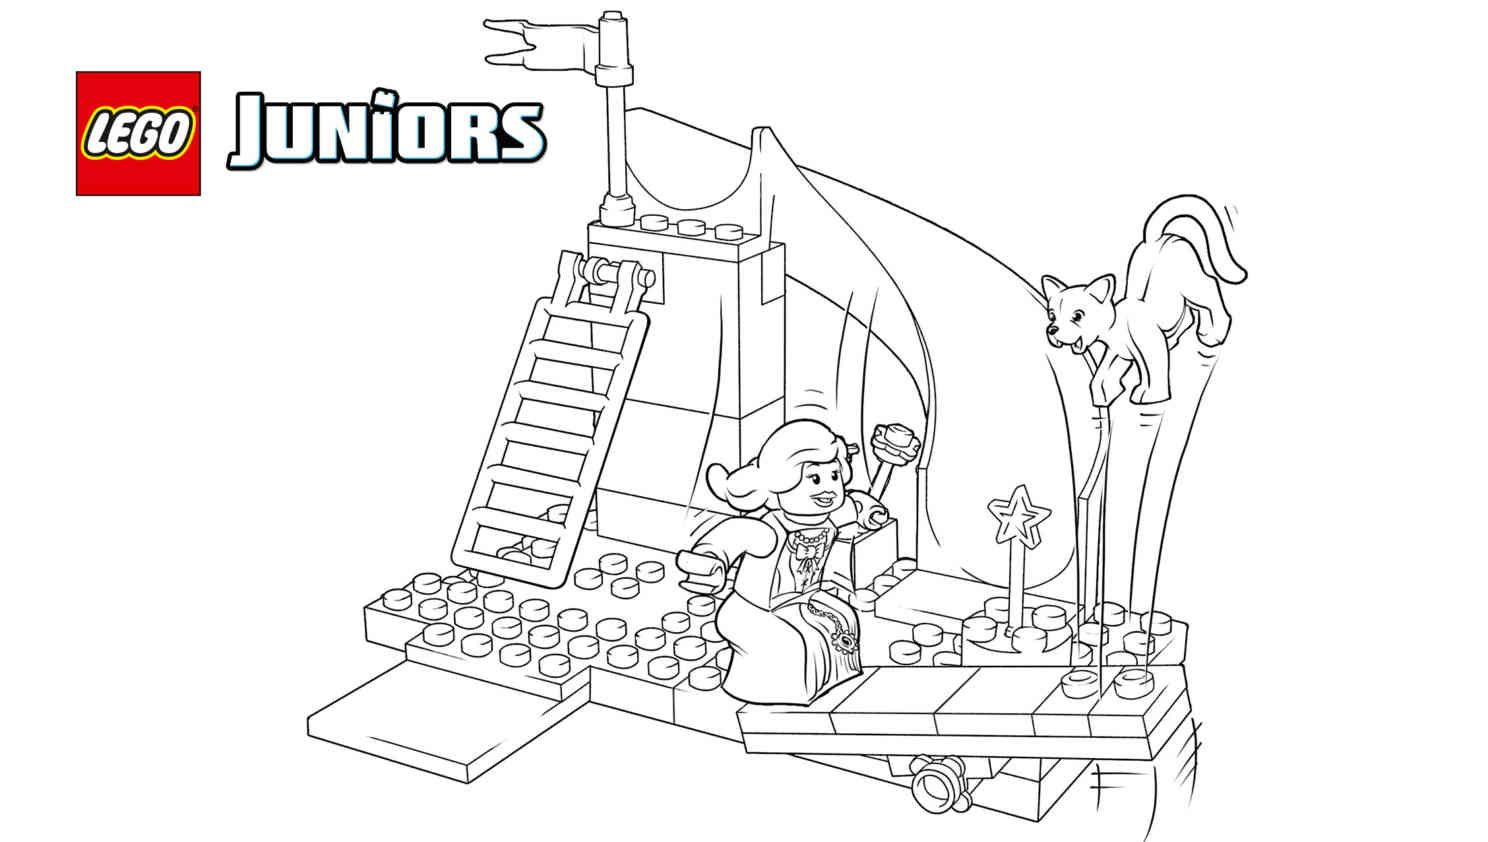 Coloring Pages Activities Lego Coloring Pages Princess Coloring Pages Toy Story Coloring Pages [ 842 x 1488 Pixel ]